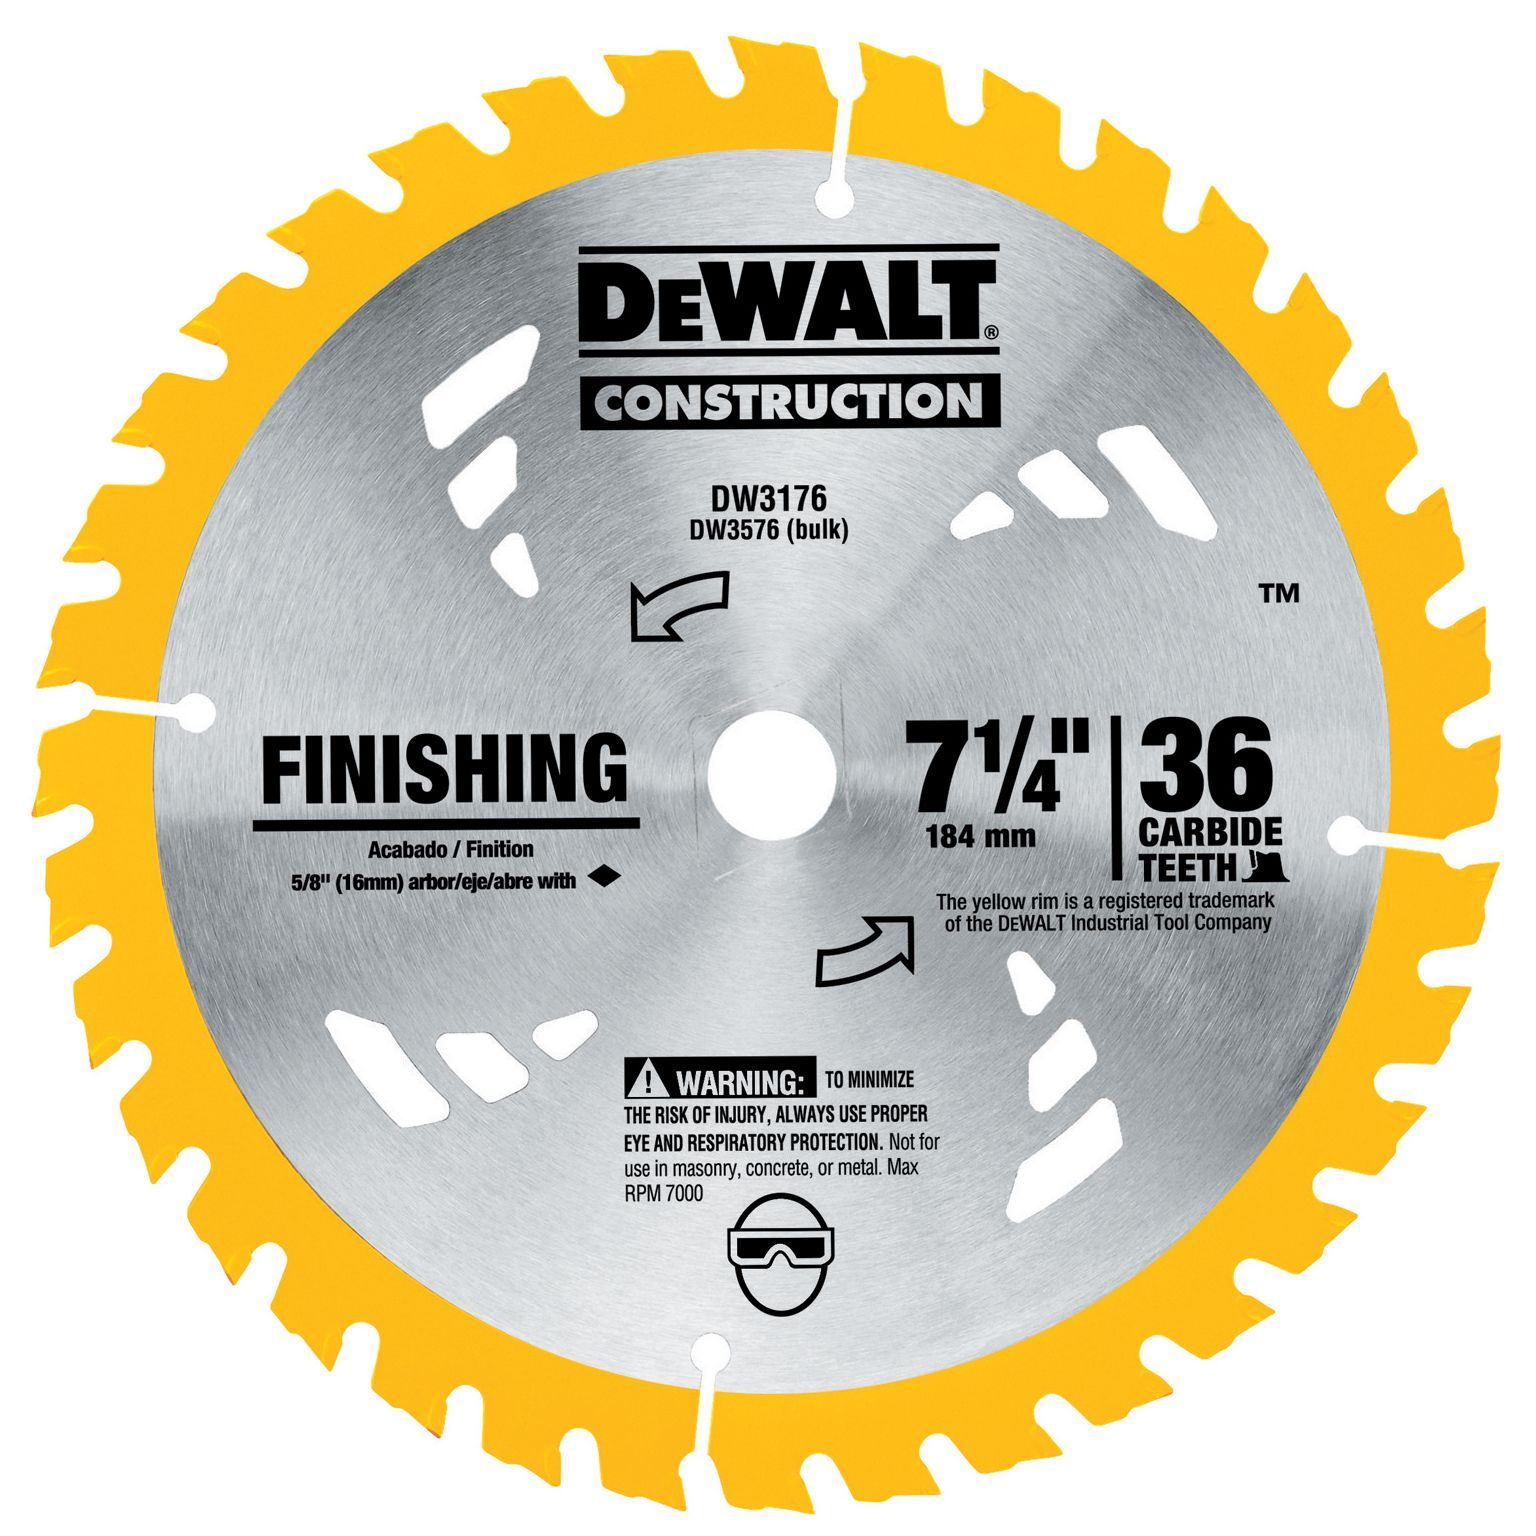 Stanley dewalt dw3176 7 14 36t finishing circular saw blade outlet store stanley dewalt dw3176 7 14 36t finishing circular saw blade keyboard keysfo Images